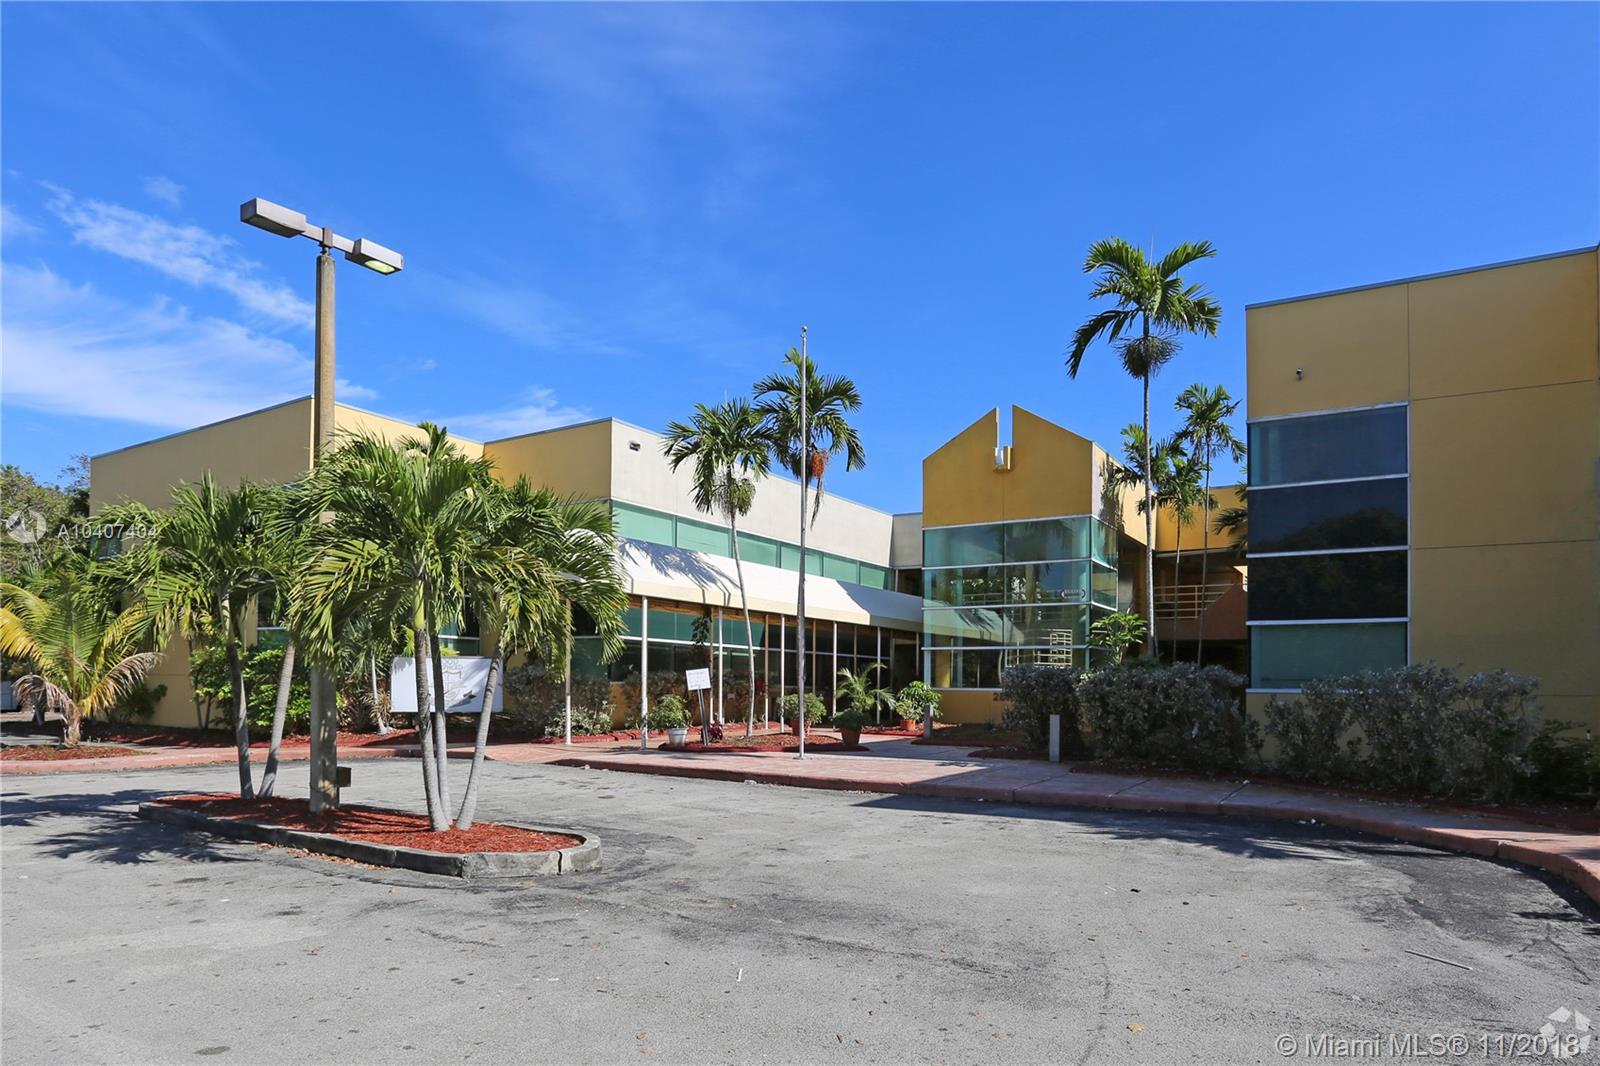 275-295 NW 199th St Luxury Real Estate